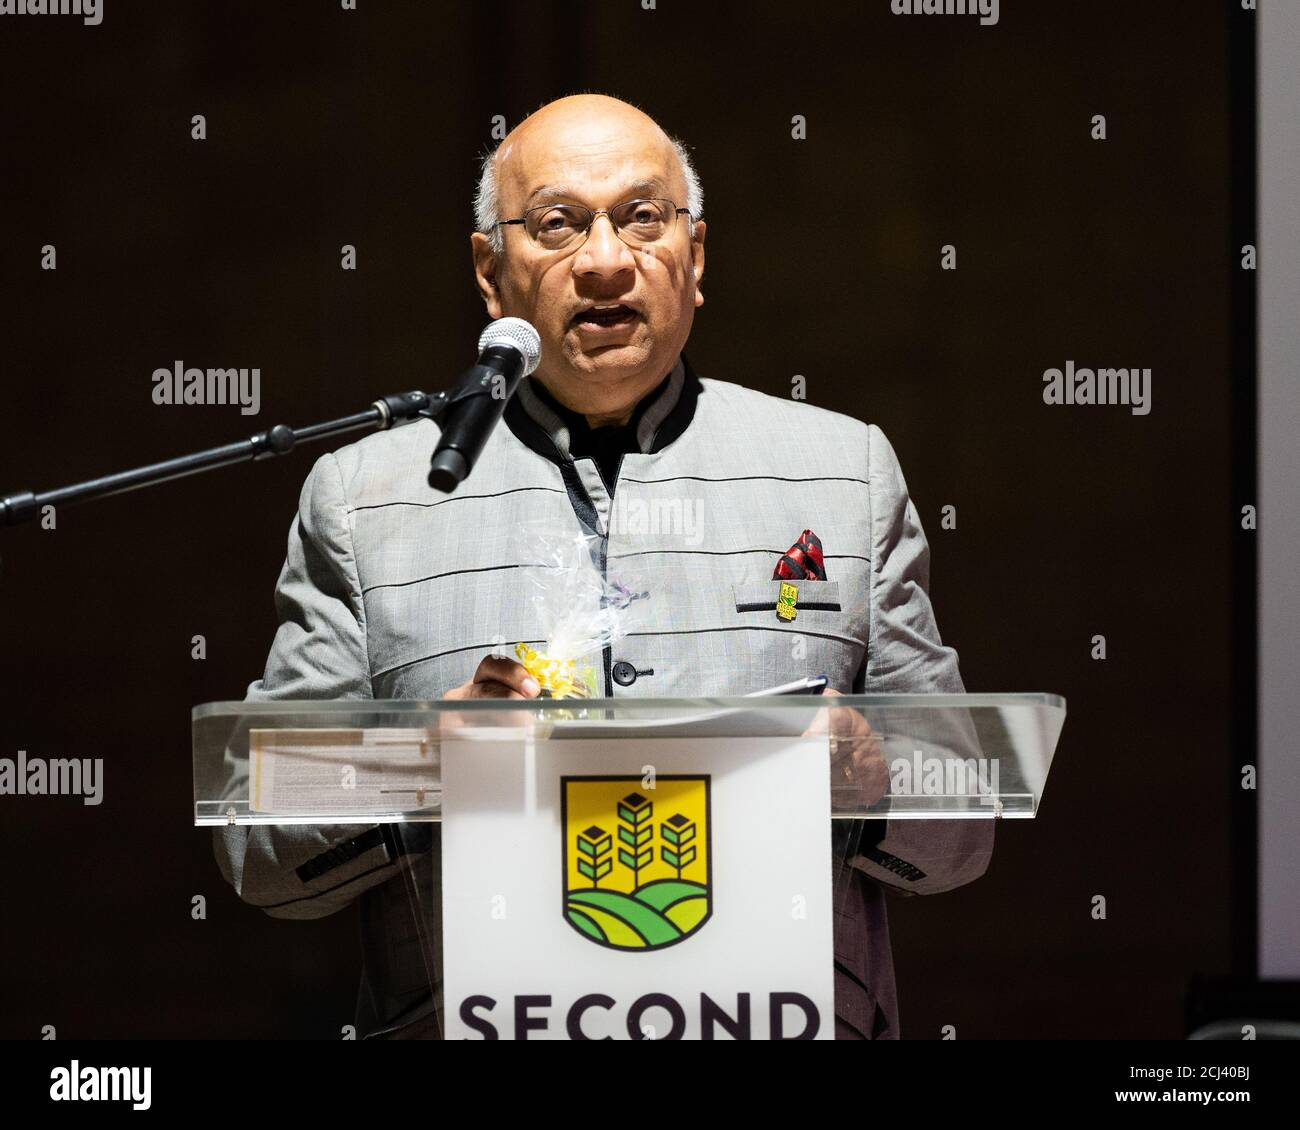 Wilmington, United States. 14th Sep, 2020. September 14, 2020 - Wilmington, DE, United States: Ajit George, Founder and Manager of Second Chances Farms, speaking at Second Chances Farms. (Photo by Michael Brochstein/Sipa USA) Credit: Sipa USA/Alamy Live News Stock Photo